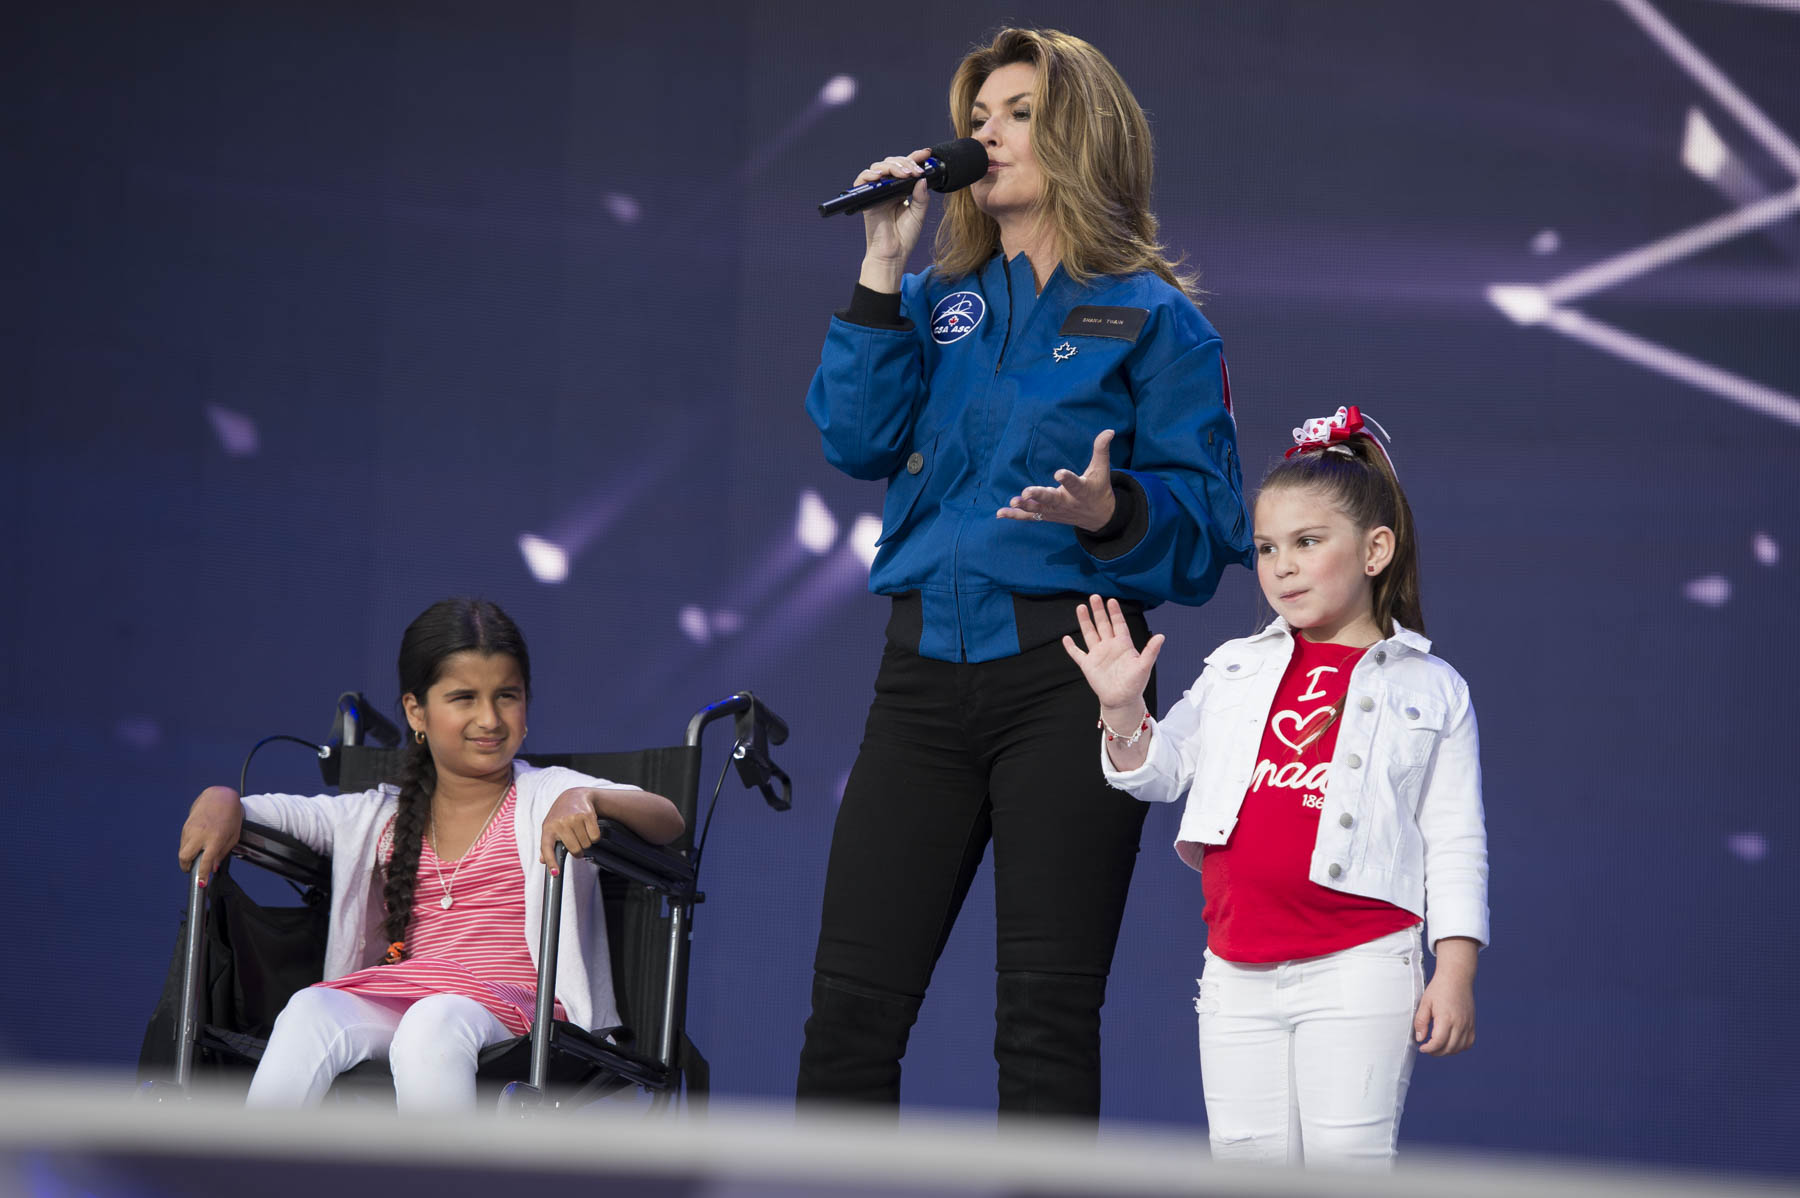 Shania Twain participated in the introduction of two new astronauts.